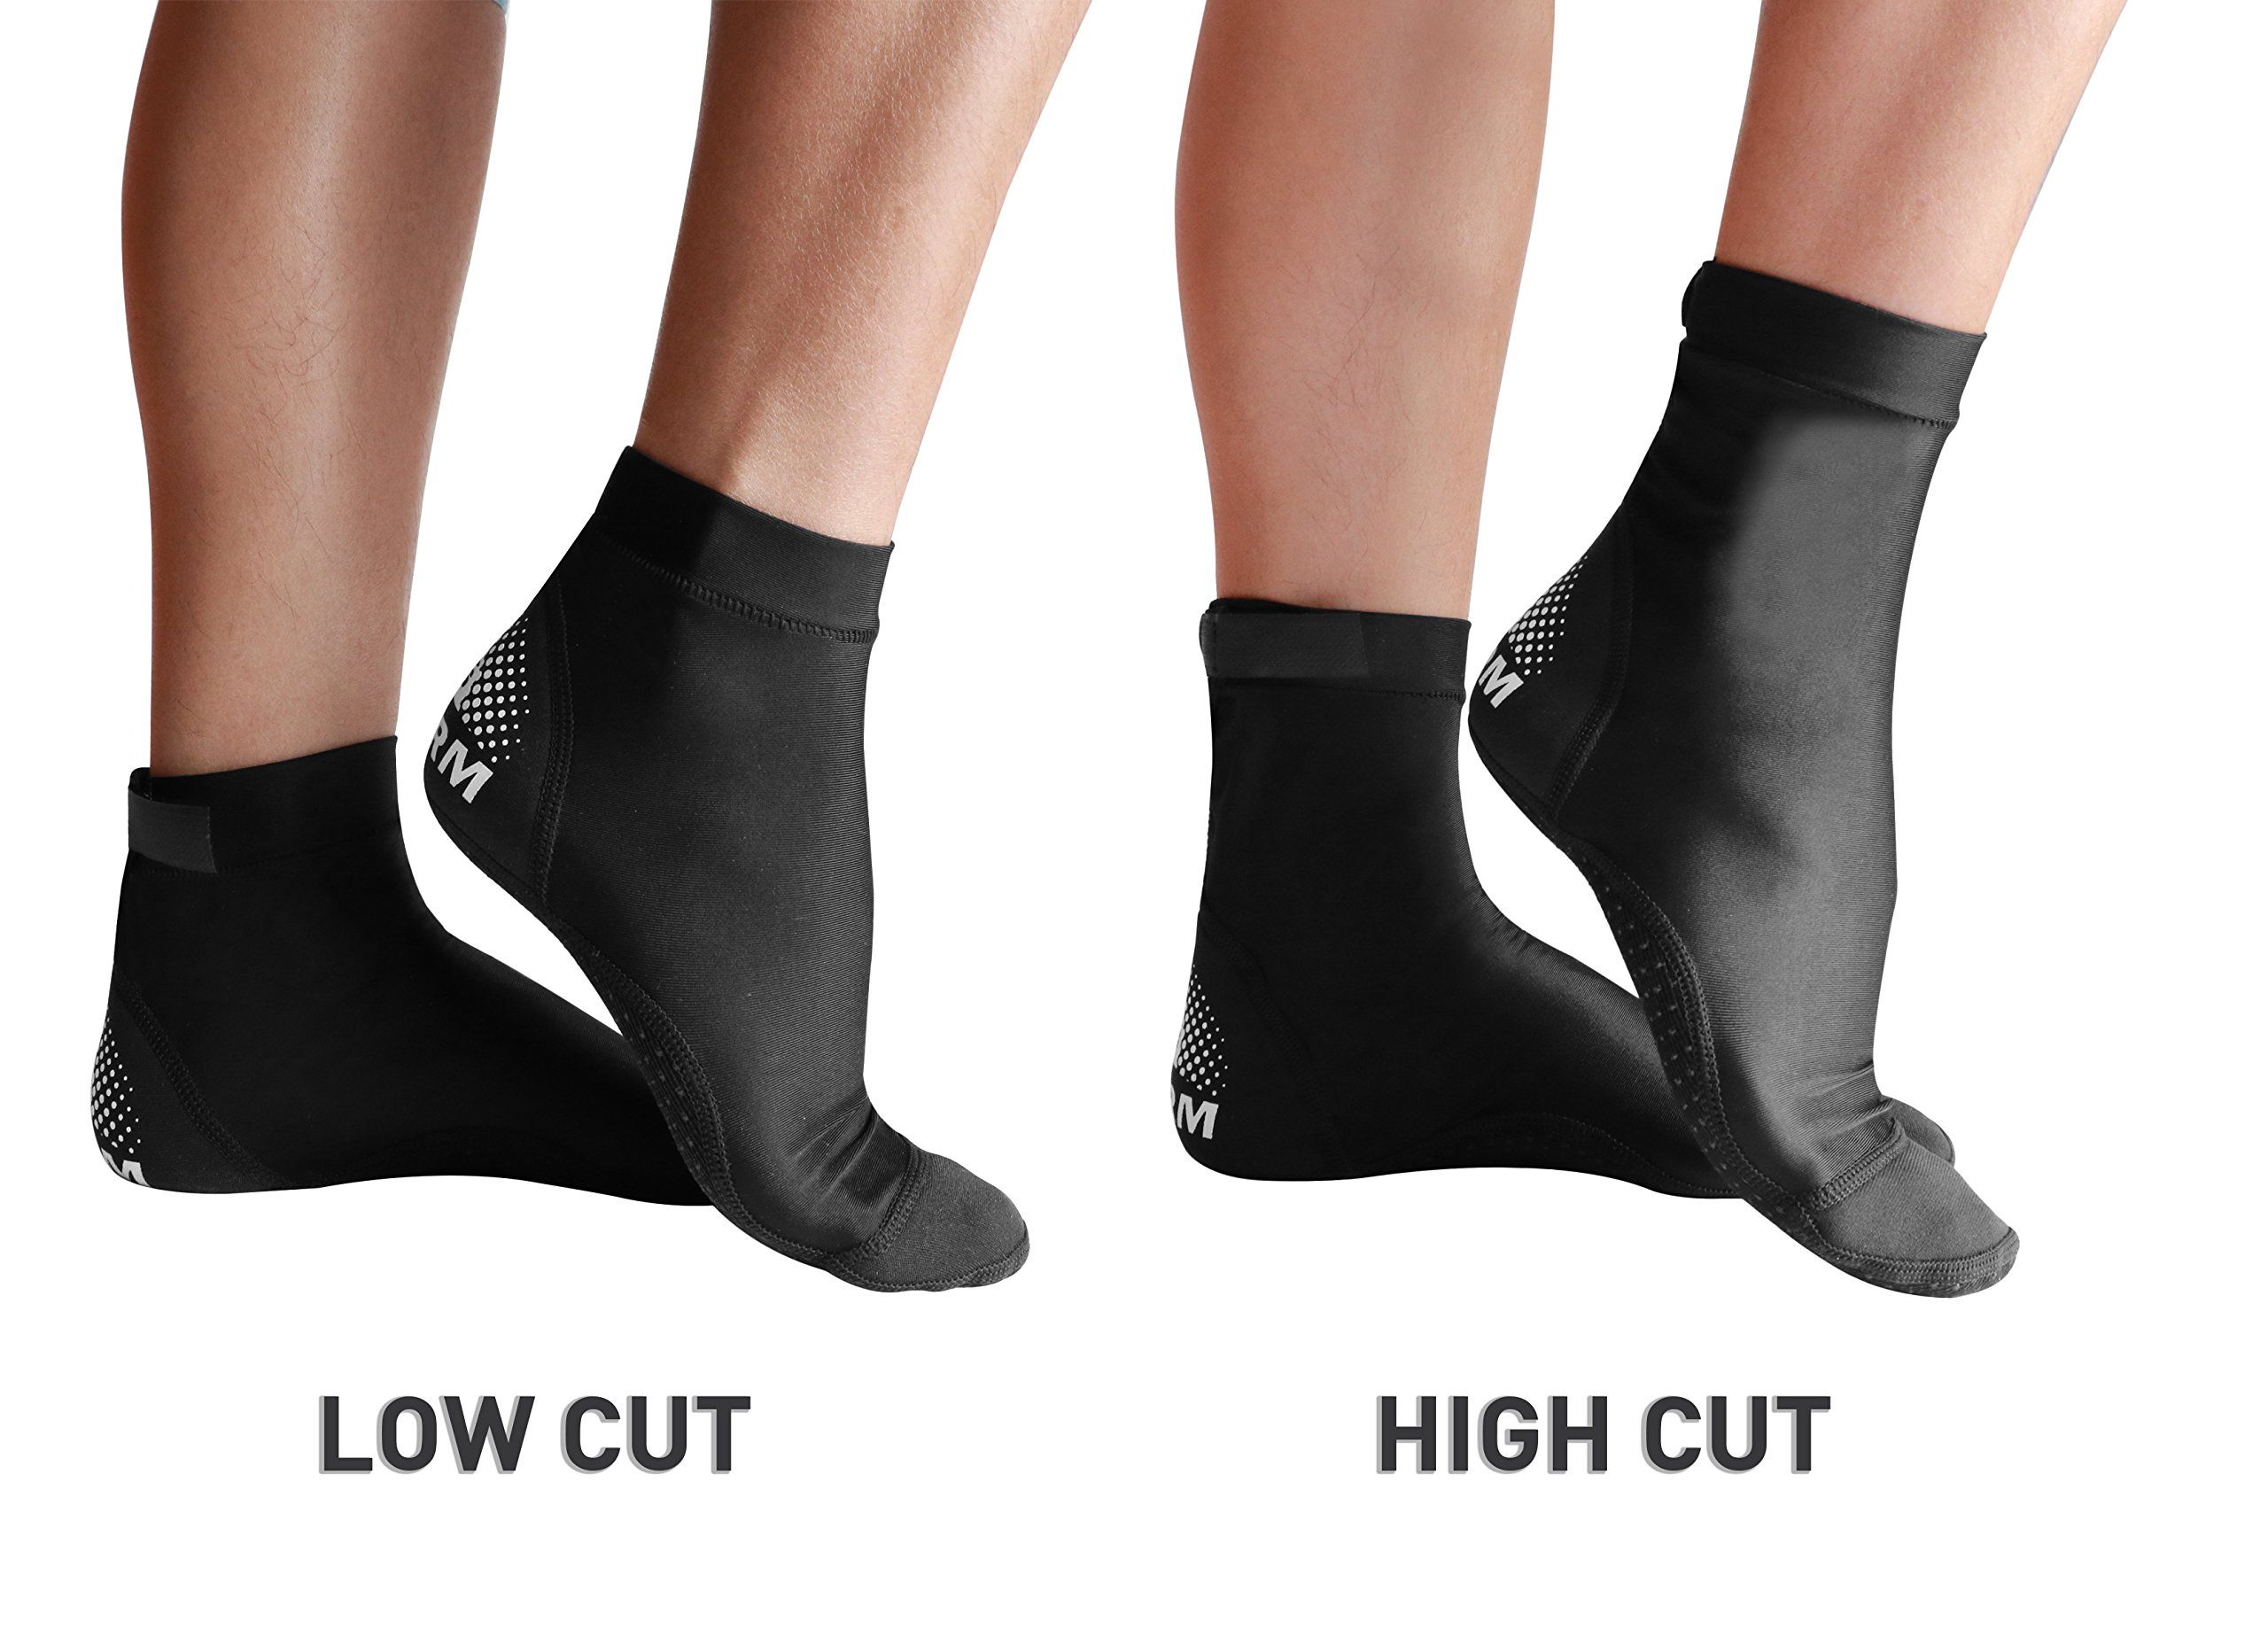 BPS 'Second Skin' Ultra Stretch Lycra Fin Socks with Fit Adjustment Straps  for Snorkeling, Tide-Pooling and All Swimming Pool, Beach and Sand